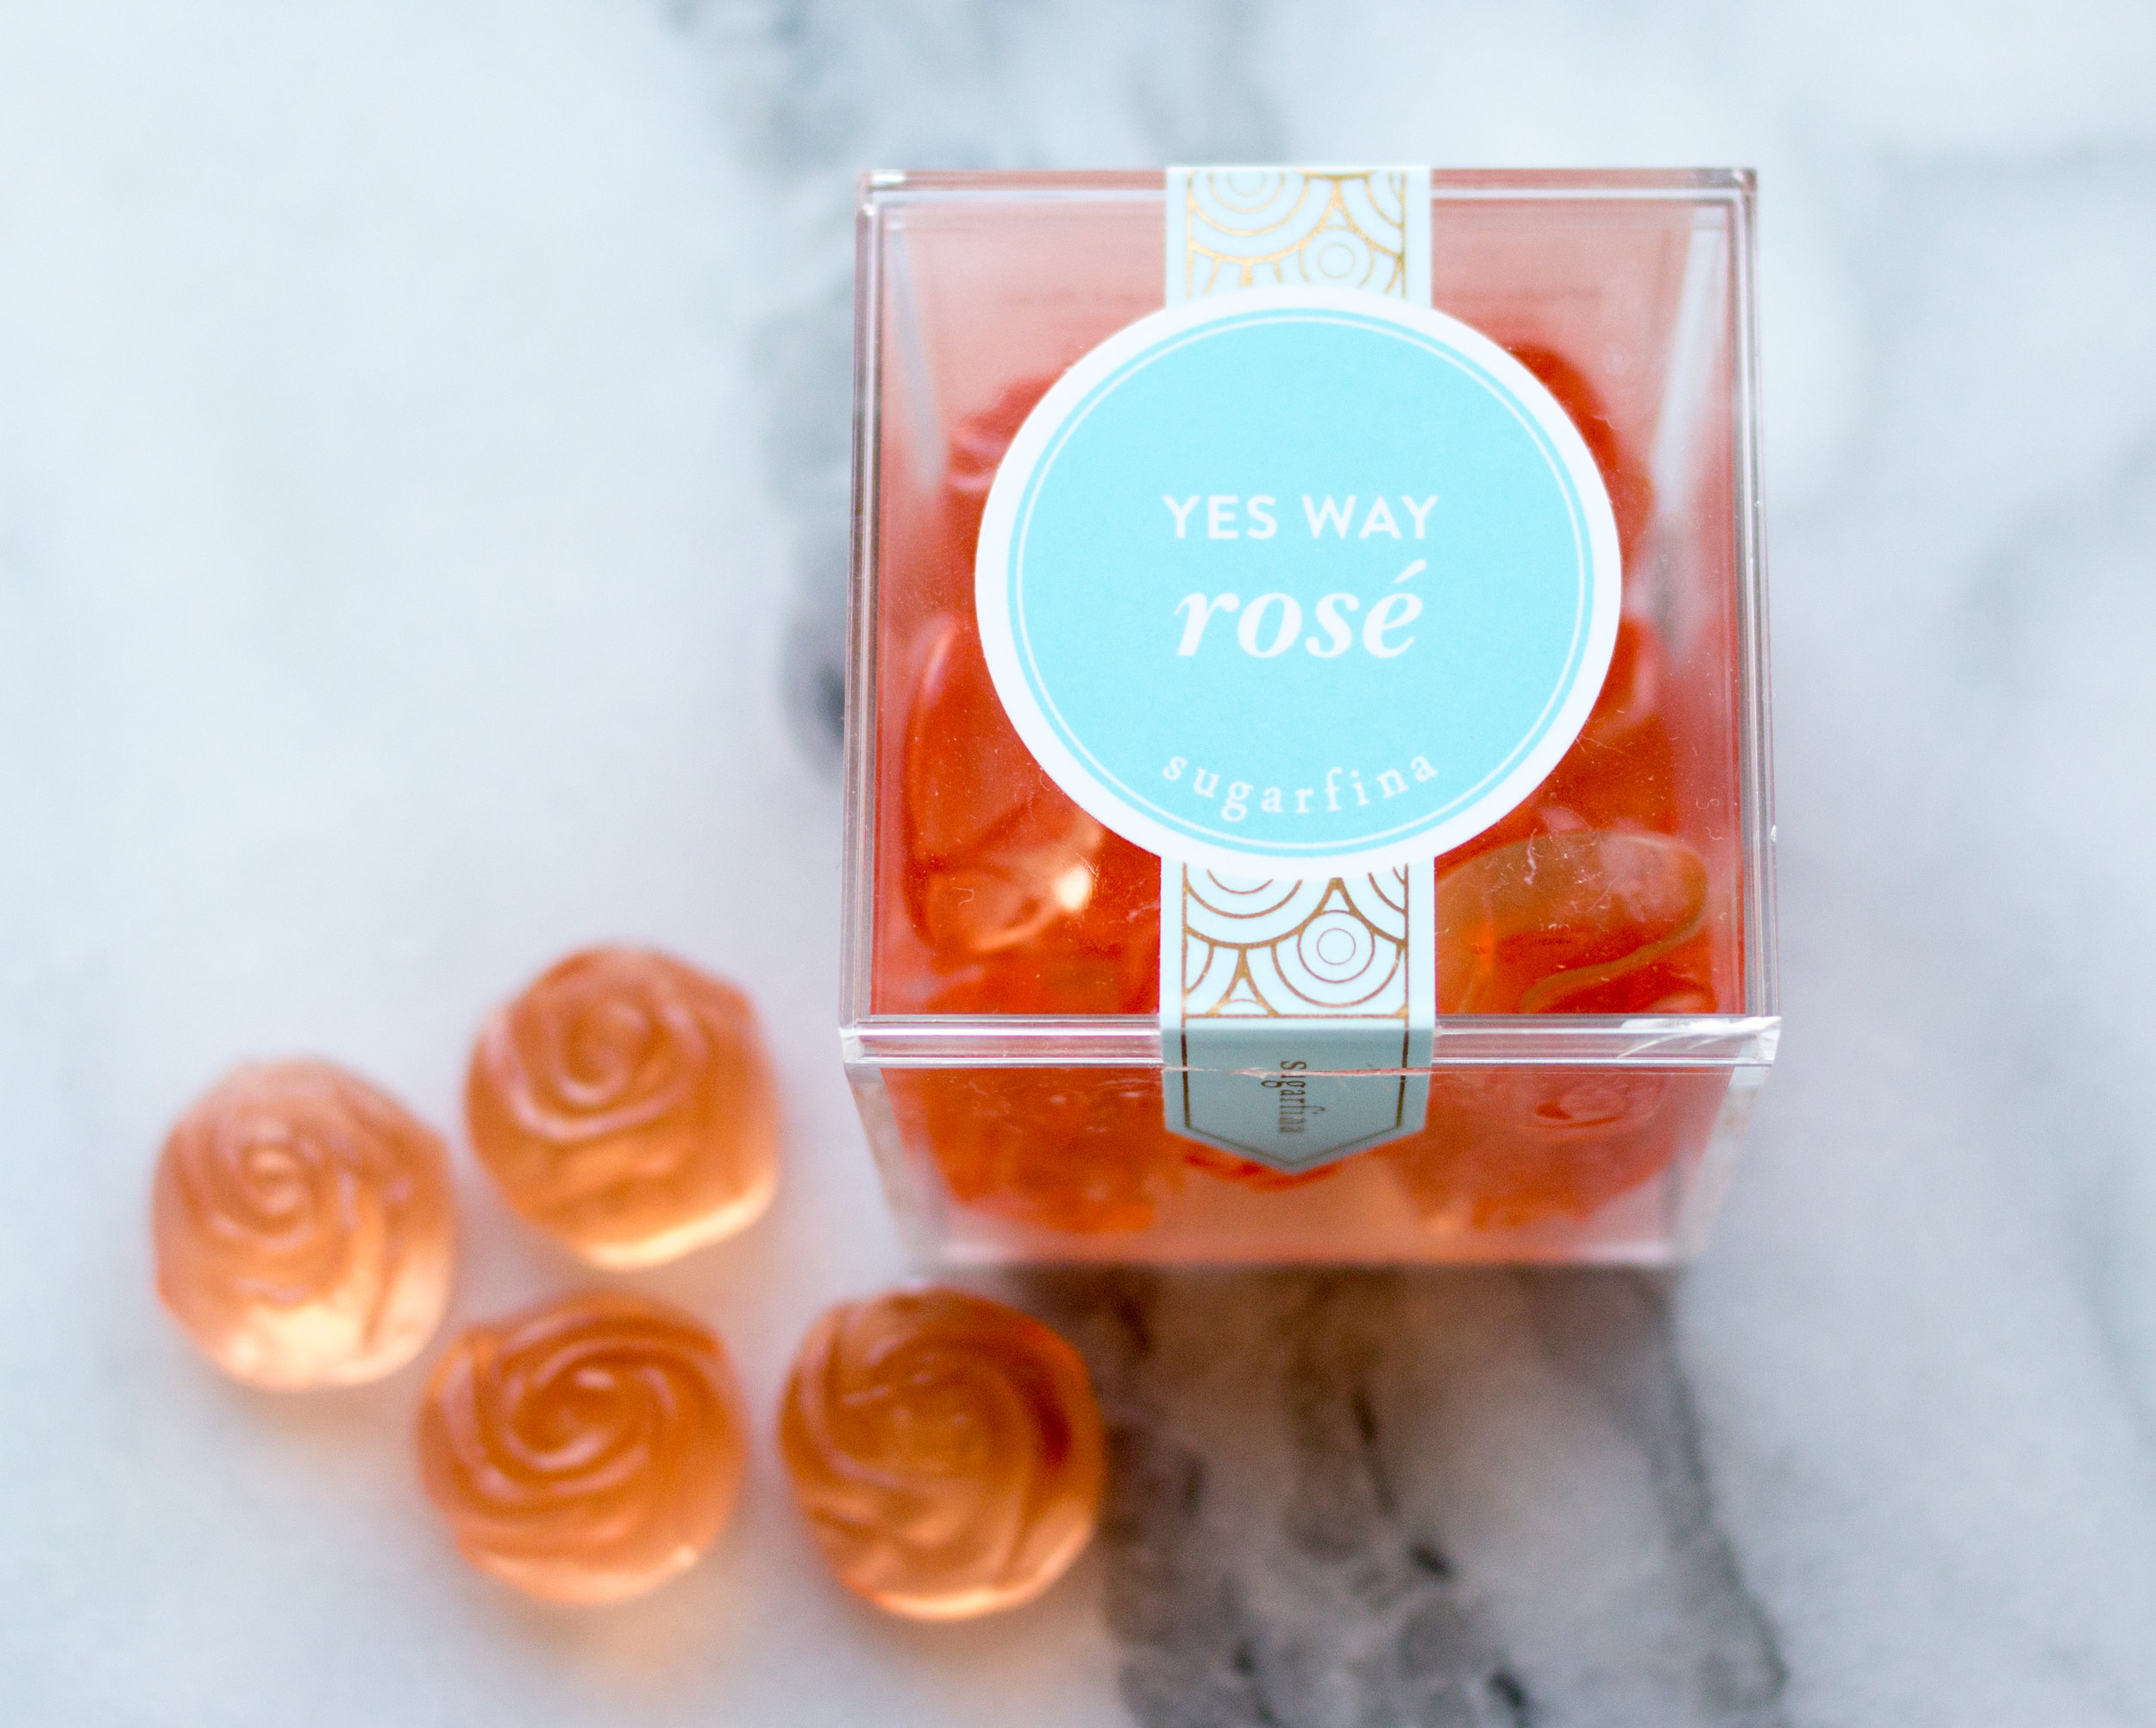 French Finds Sugarfina